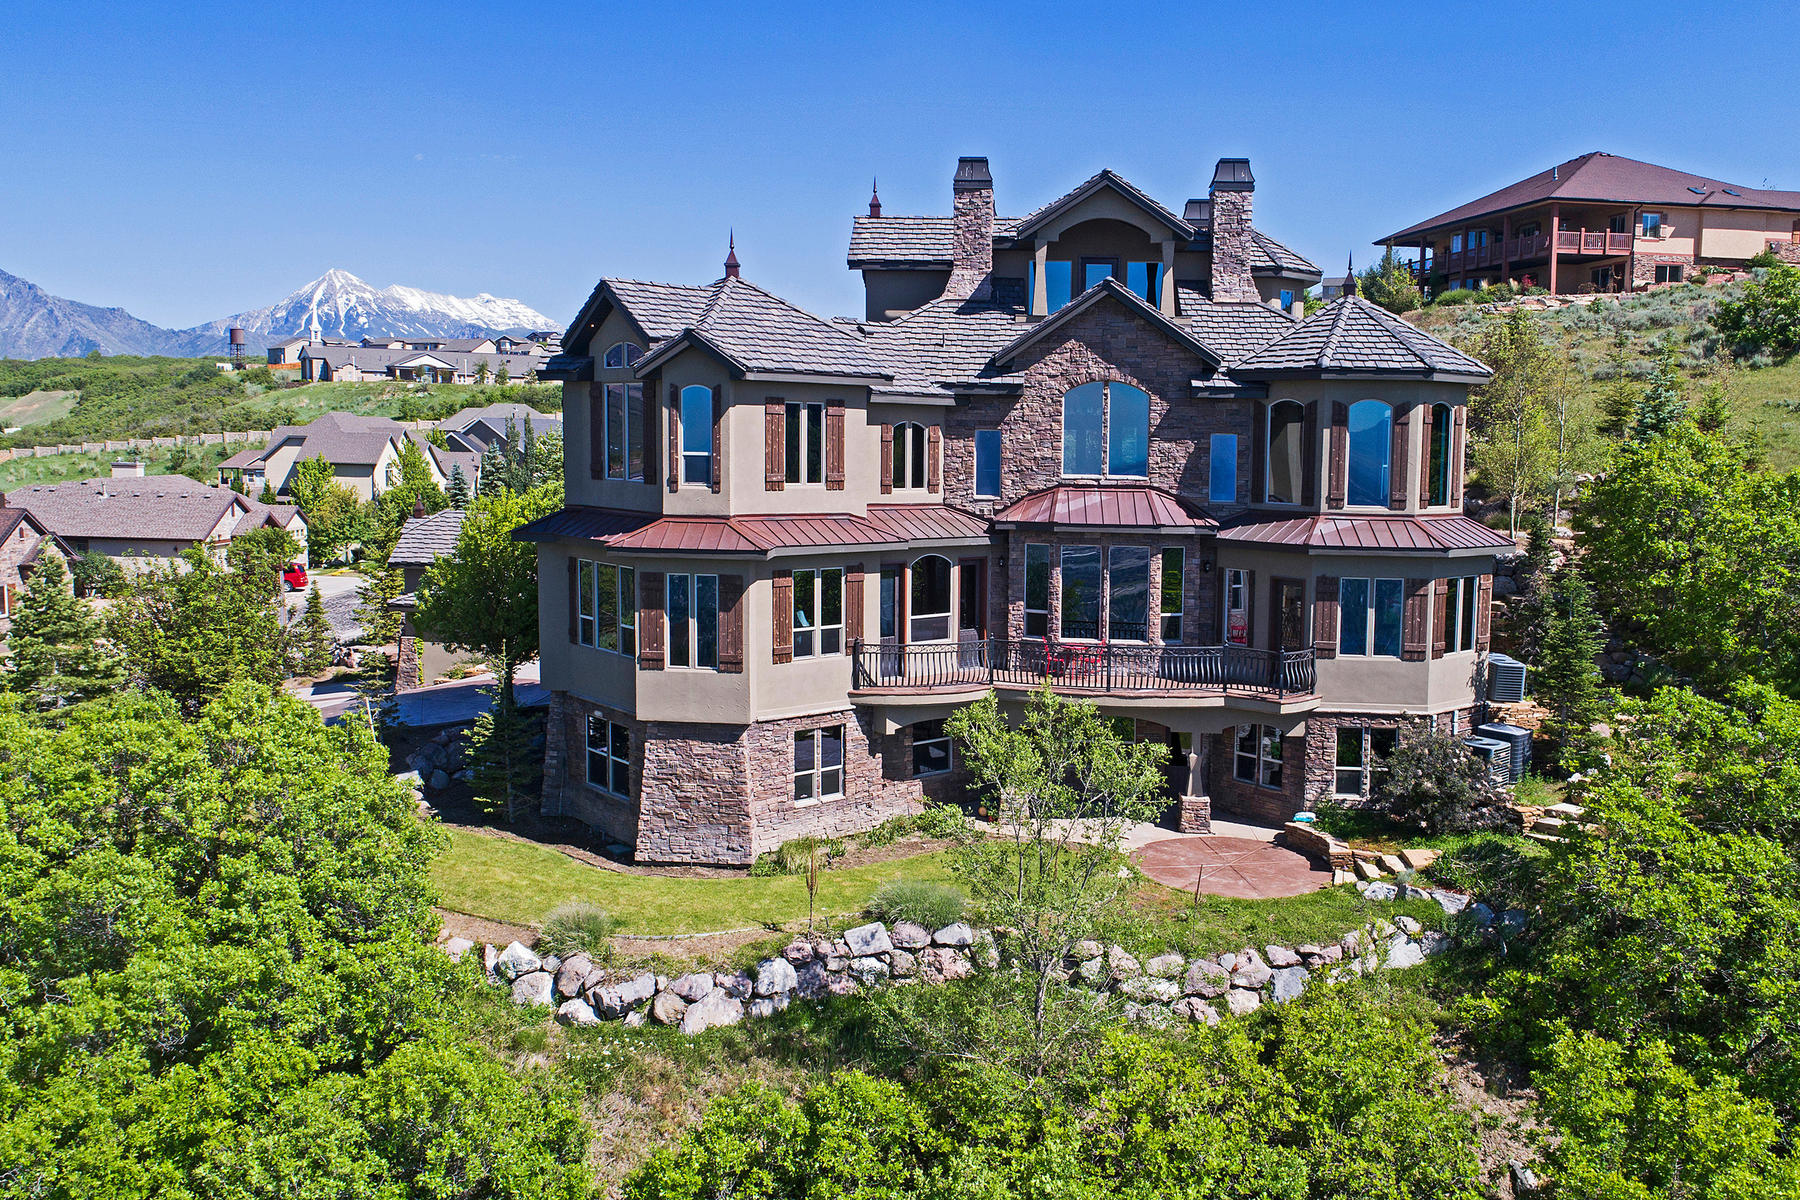 一戸建て のために 売買 アット Architectural Masterpiece With Views of Mt Timpanogos to the Oquirrh Mountains 14858 Saddle Leaf Ct Salt Lake City, ユタ, 84020 アメリカ合衆国